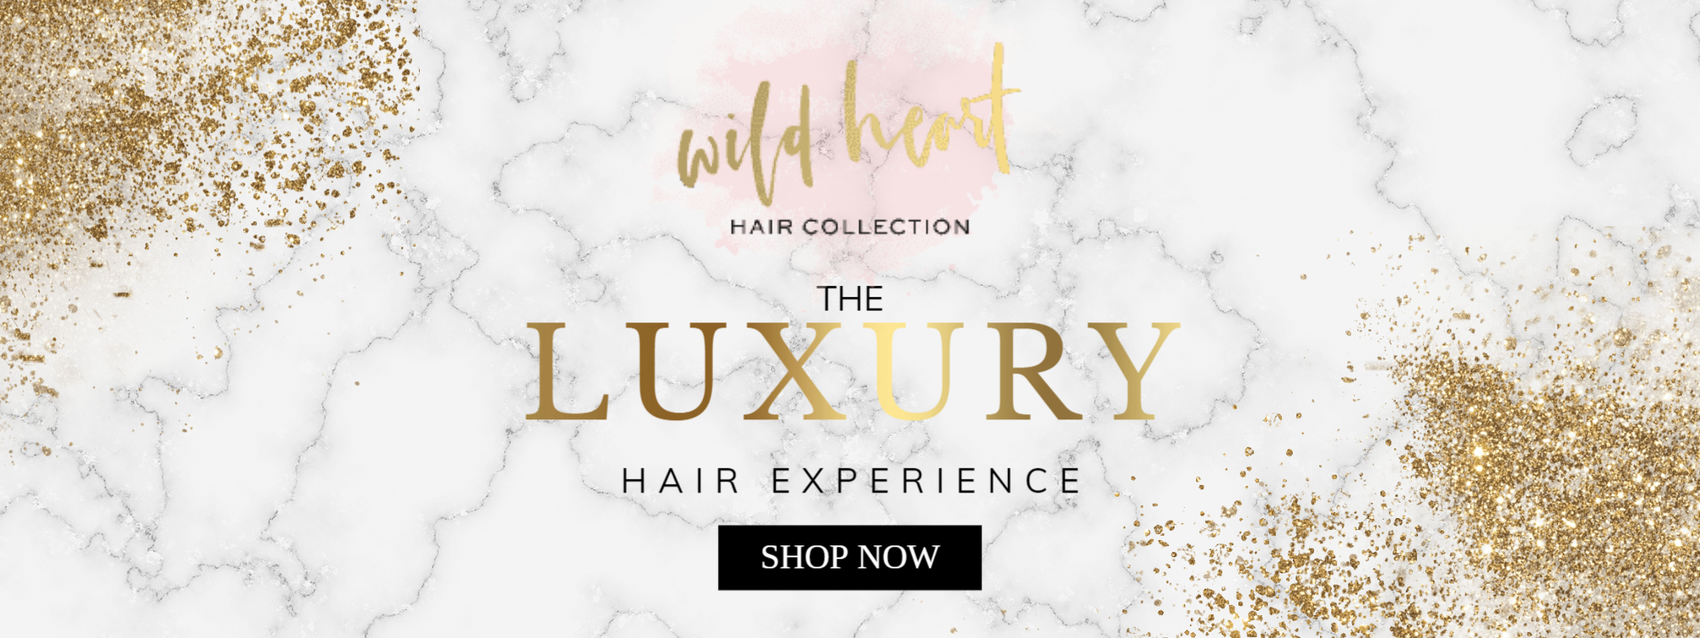 Wildheart Hair Collection